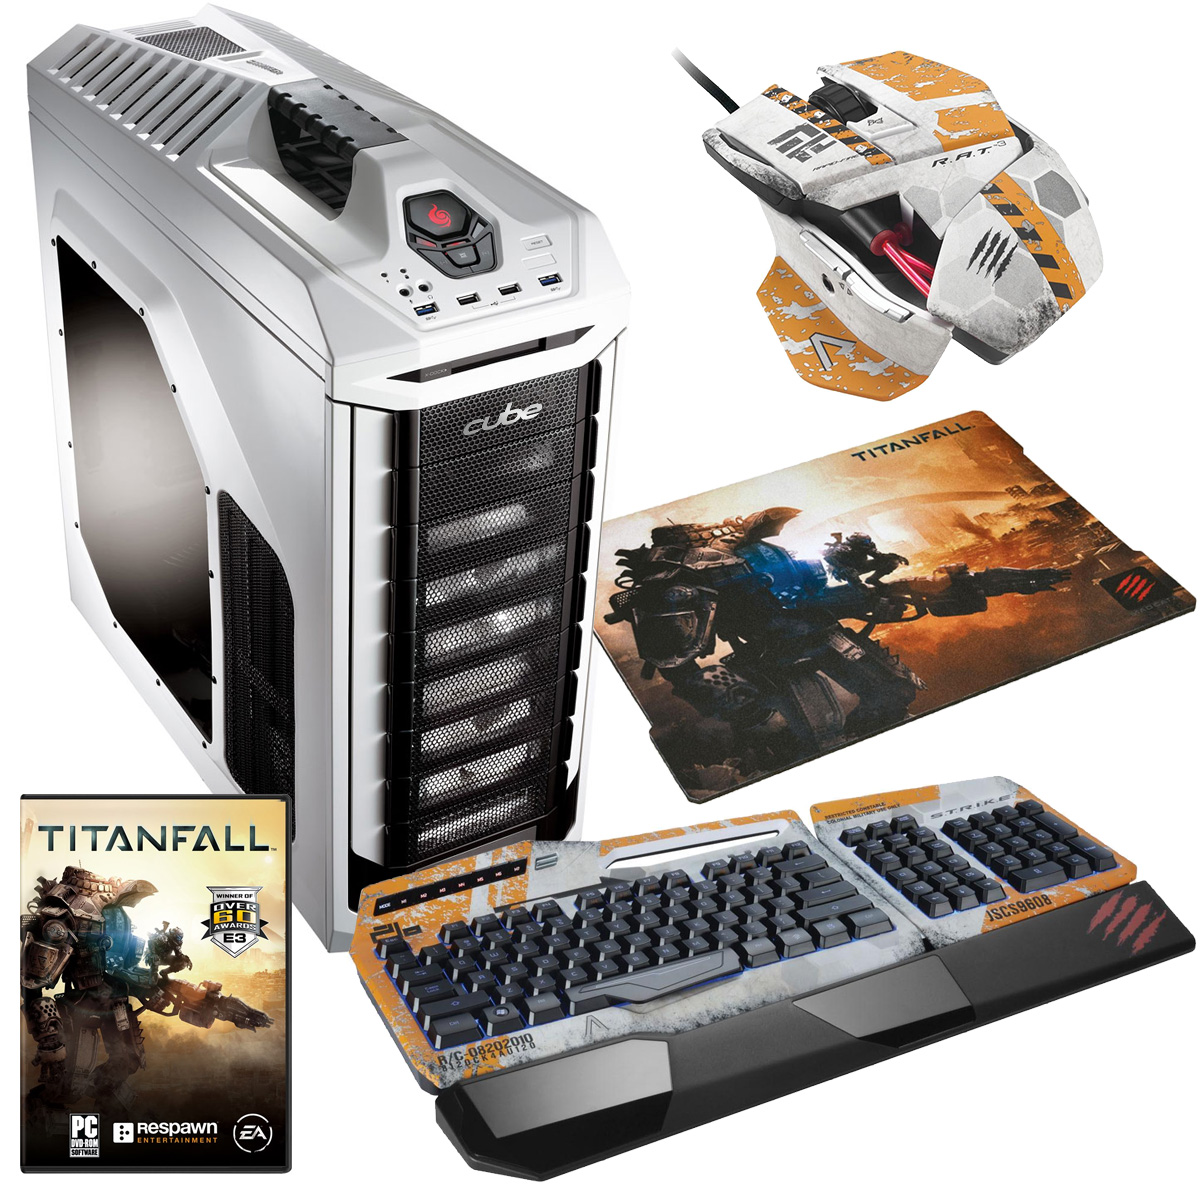 Cube Titanfall Watercooled Gaming PC Bundle Core i5k with Mad Catz TitanFall Keyboard/Mouse & Surface